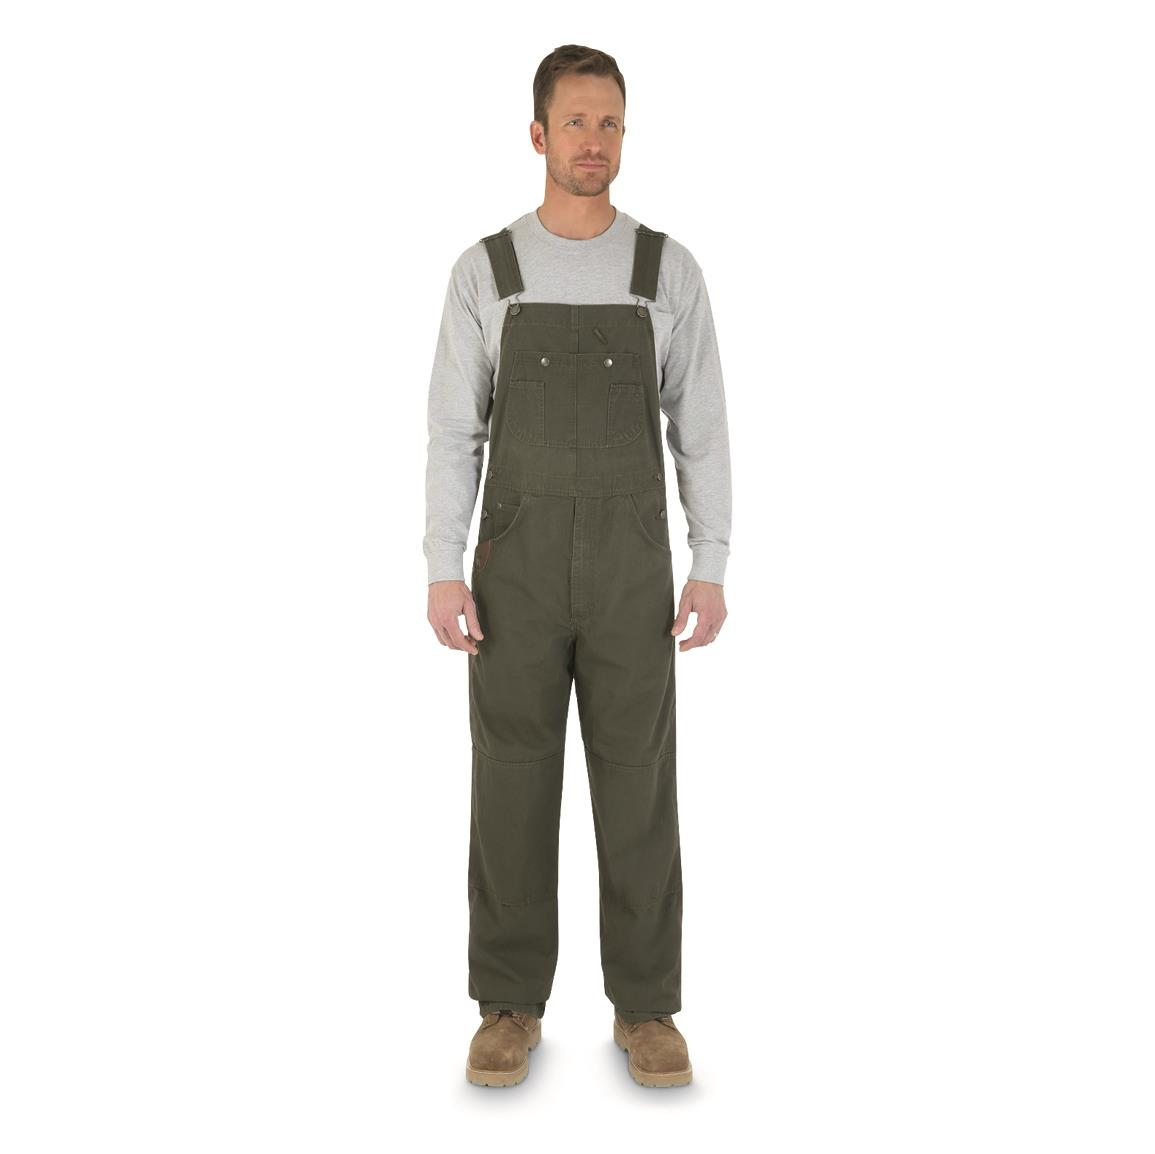 Wrangler RIGGS Workwear Ultimate Overalls, Loden